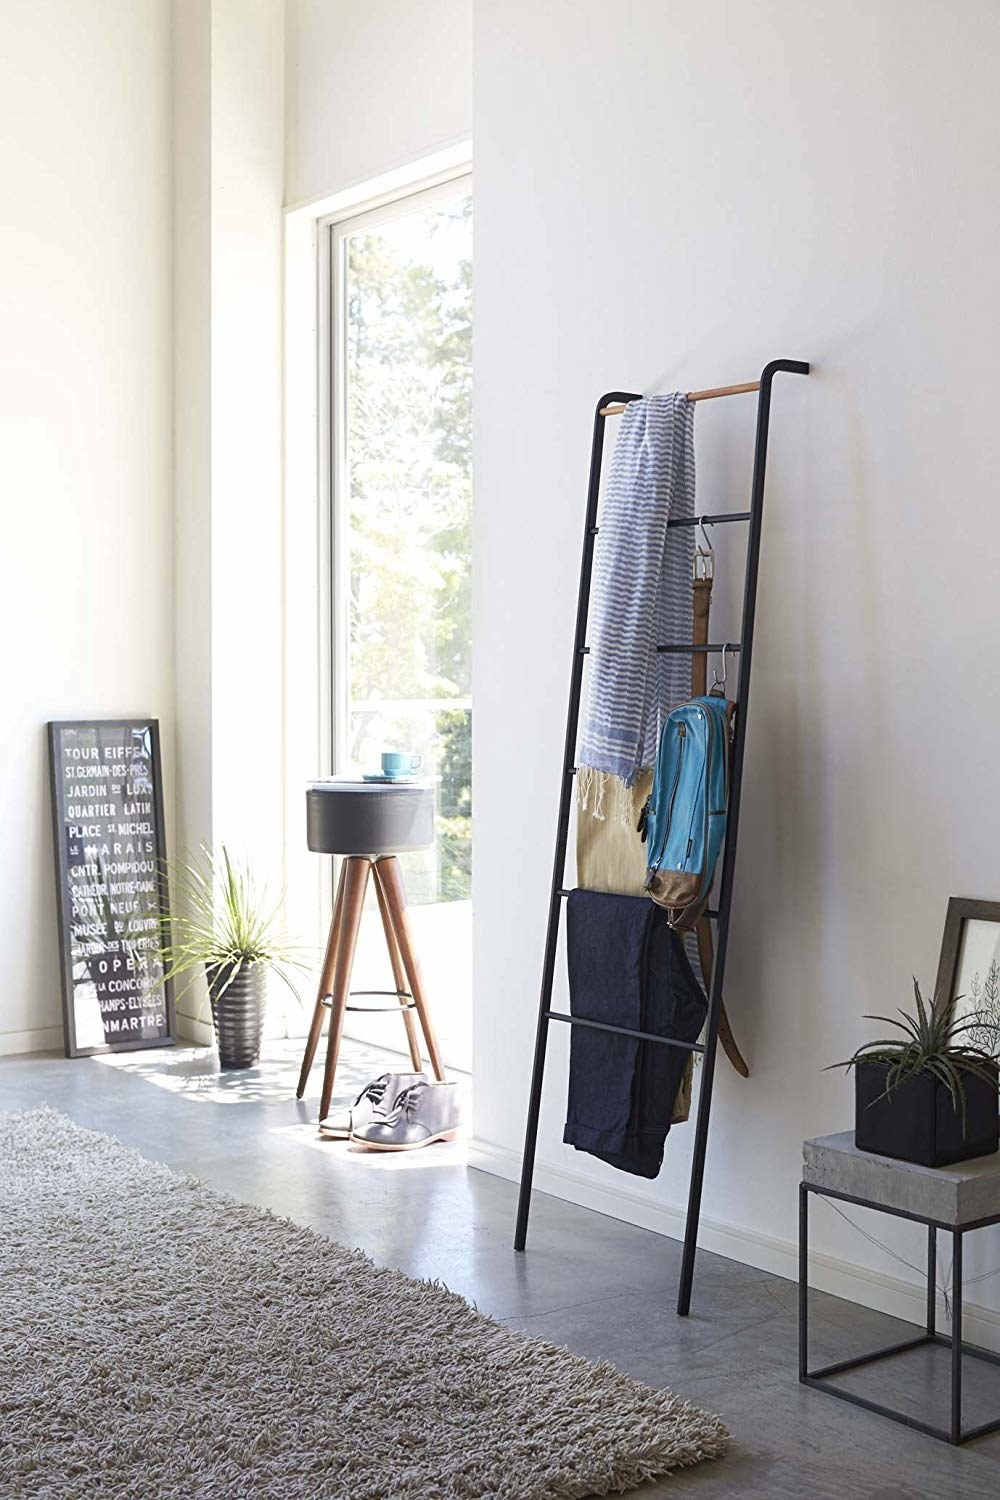 Black pipe and natural wood leaning ladder with clothes hanging on rungs